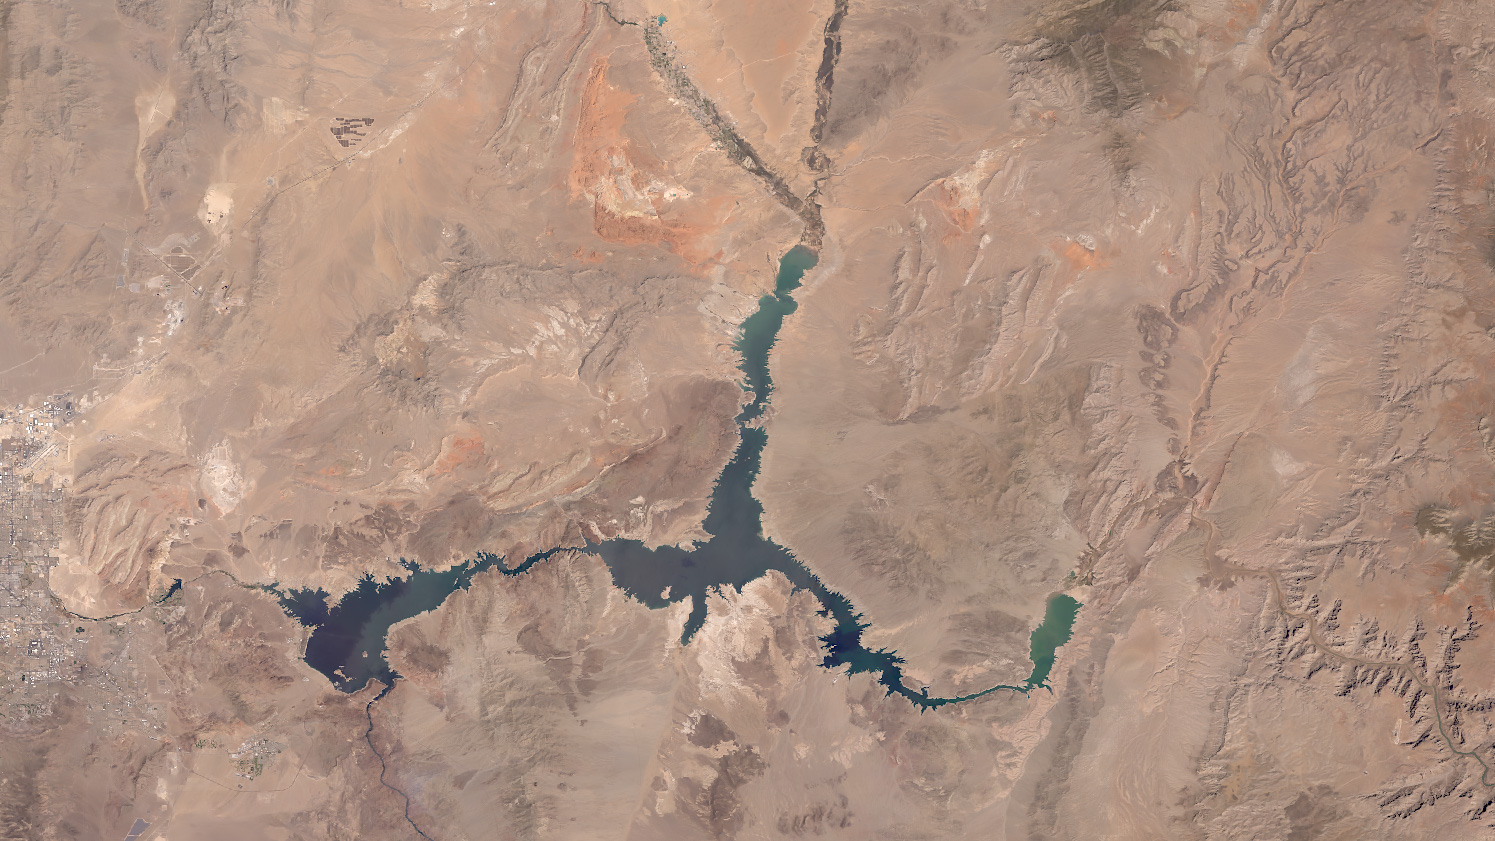 2021 satellite image of Lake Mead. The difference is striking as the Lake edges retreats over 21 years.